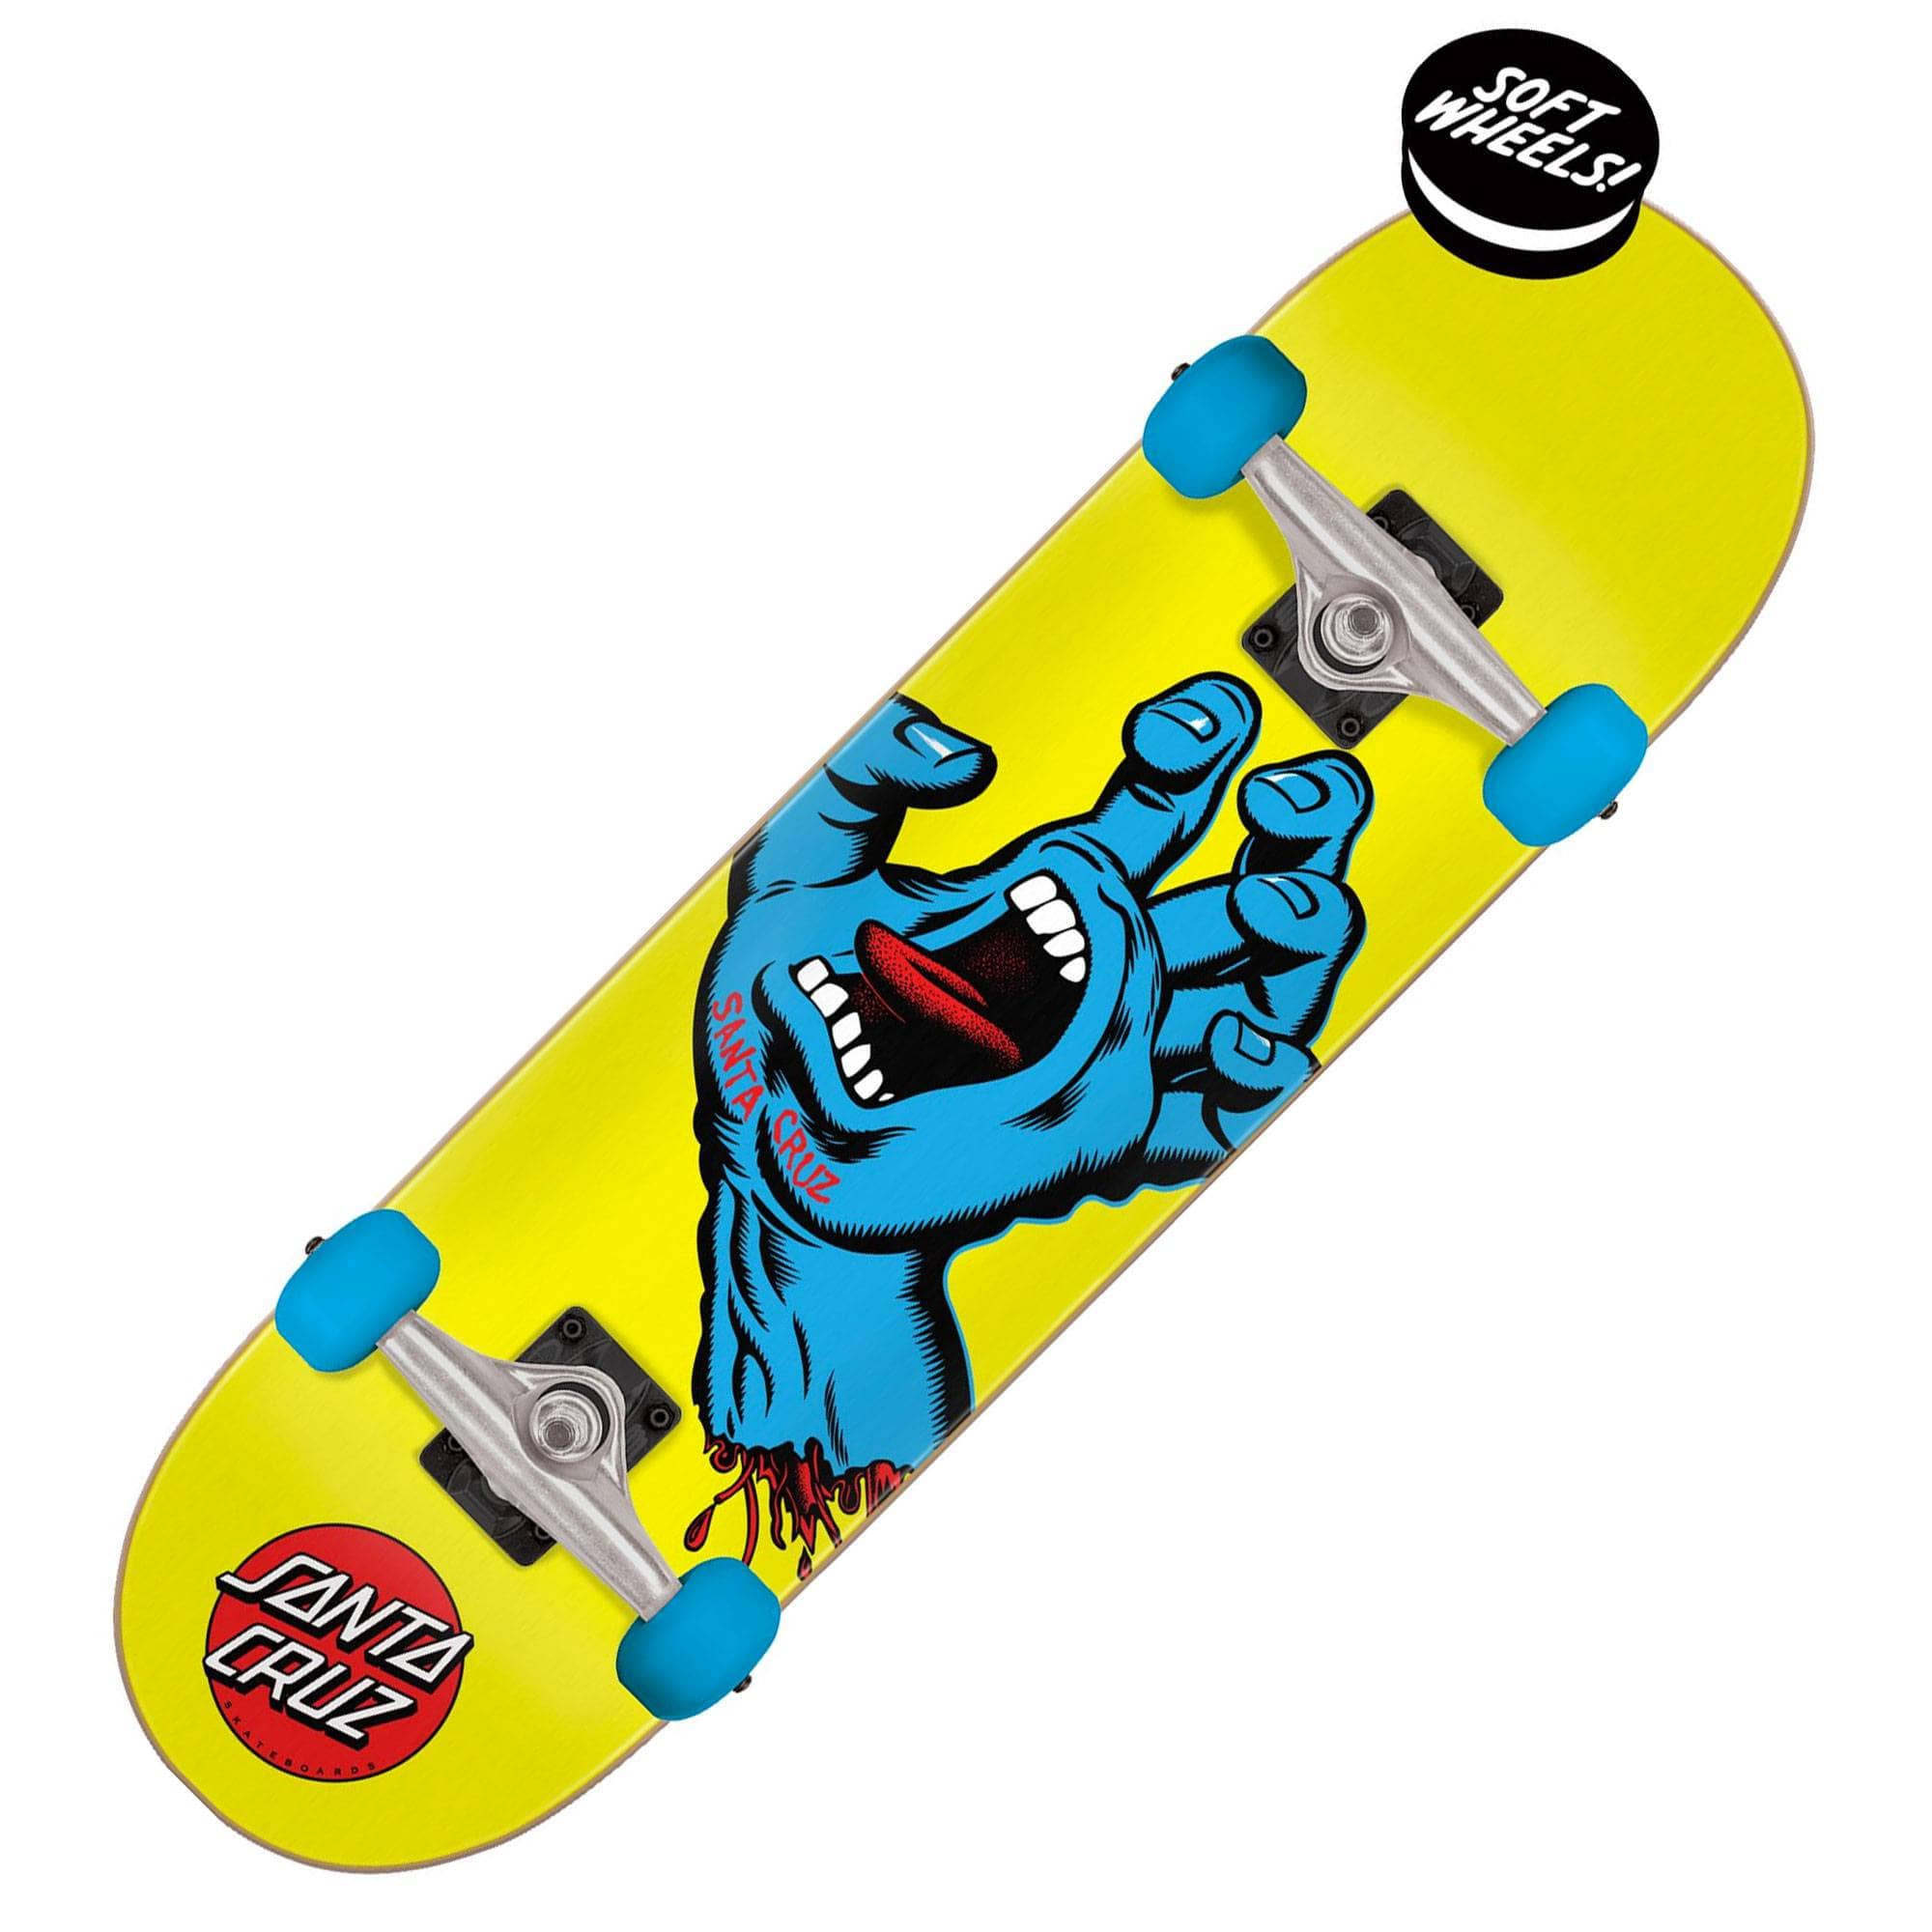 Santa Cruz komplet Screaming Hand Mini Sk8 Completes 7.75 Yellow / Blue